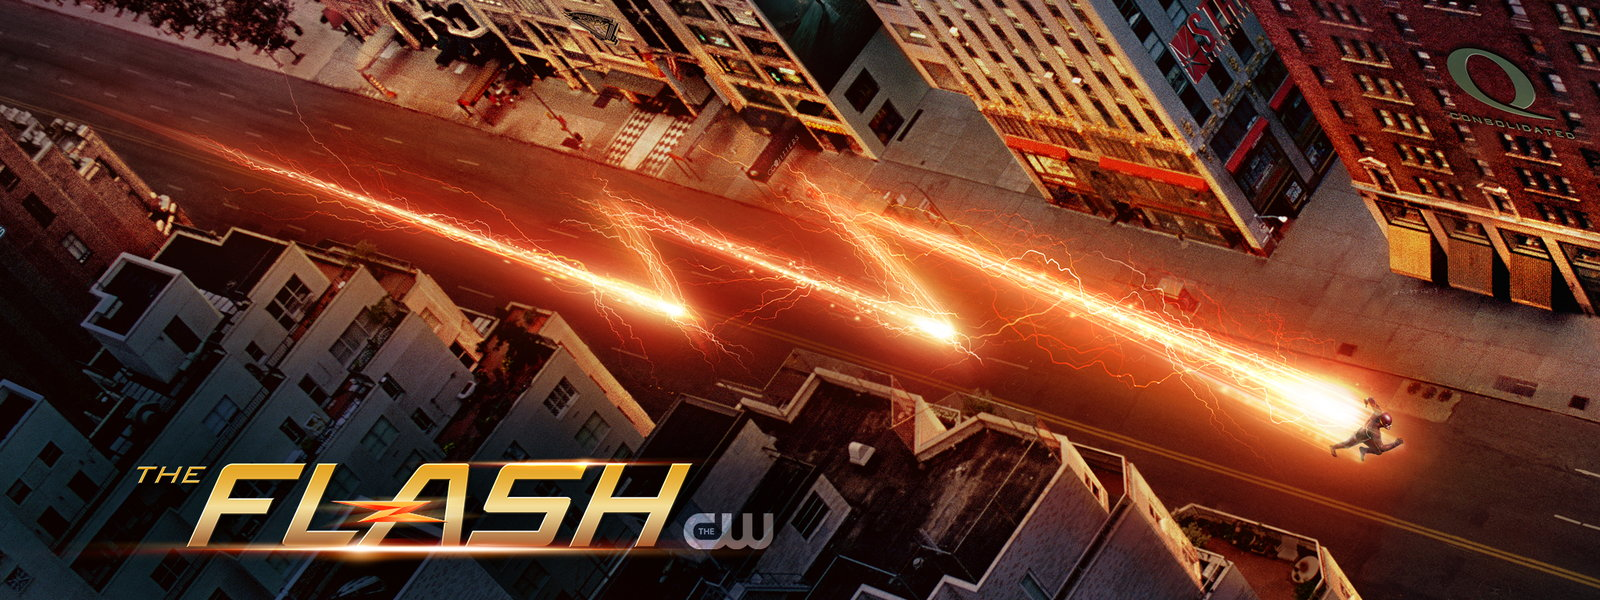 tf1-achete-the-flash-stalker-the-mysteries-of-laura-essentiel-series-3